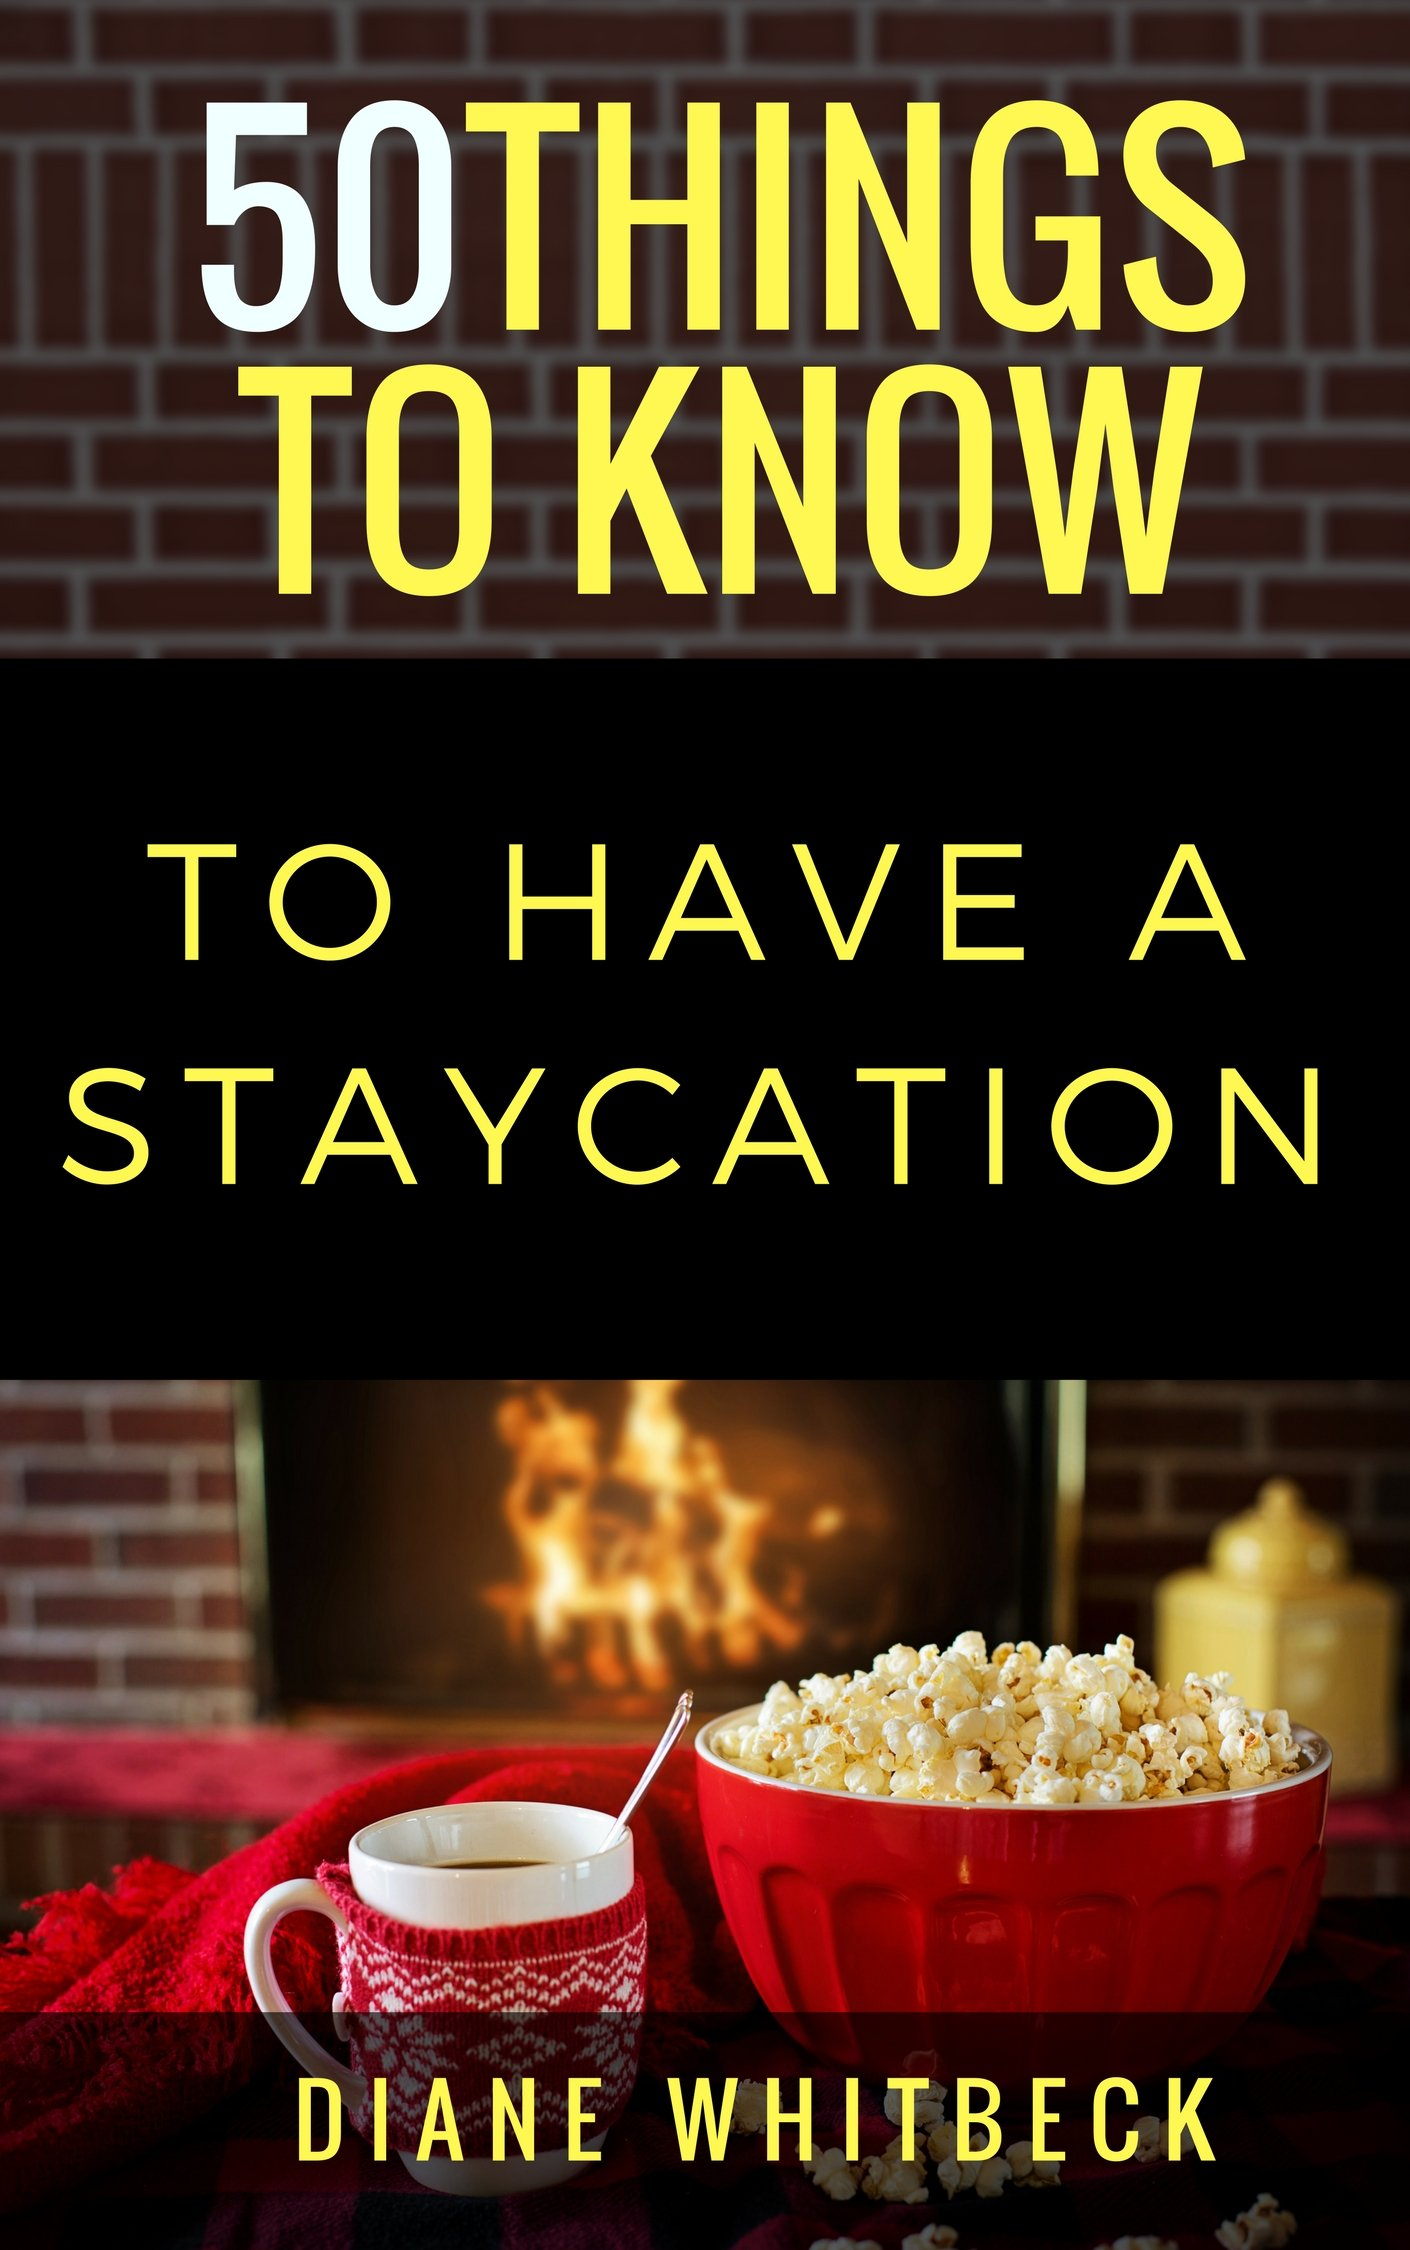 50 Things to Know to Have a Staycation: How to Have Fun Without Leaving Town (50 Things to Know Travel)